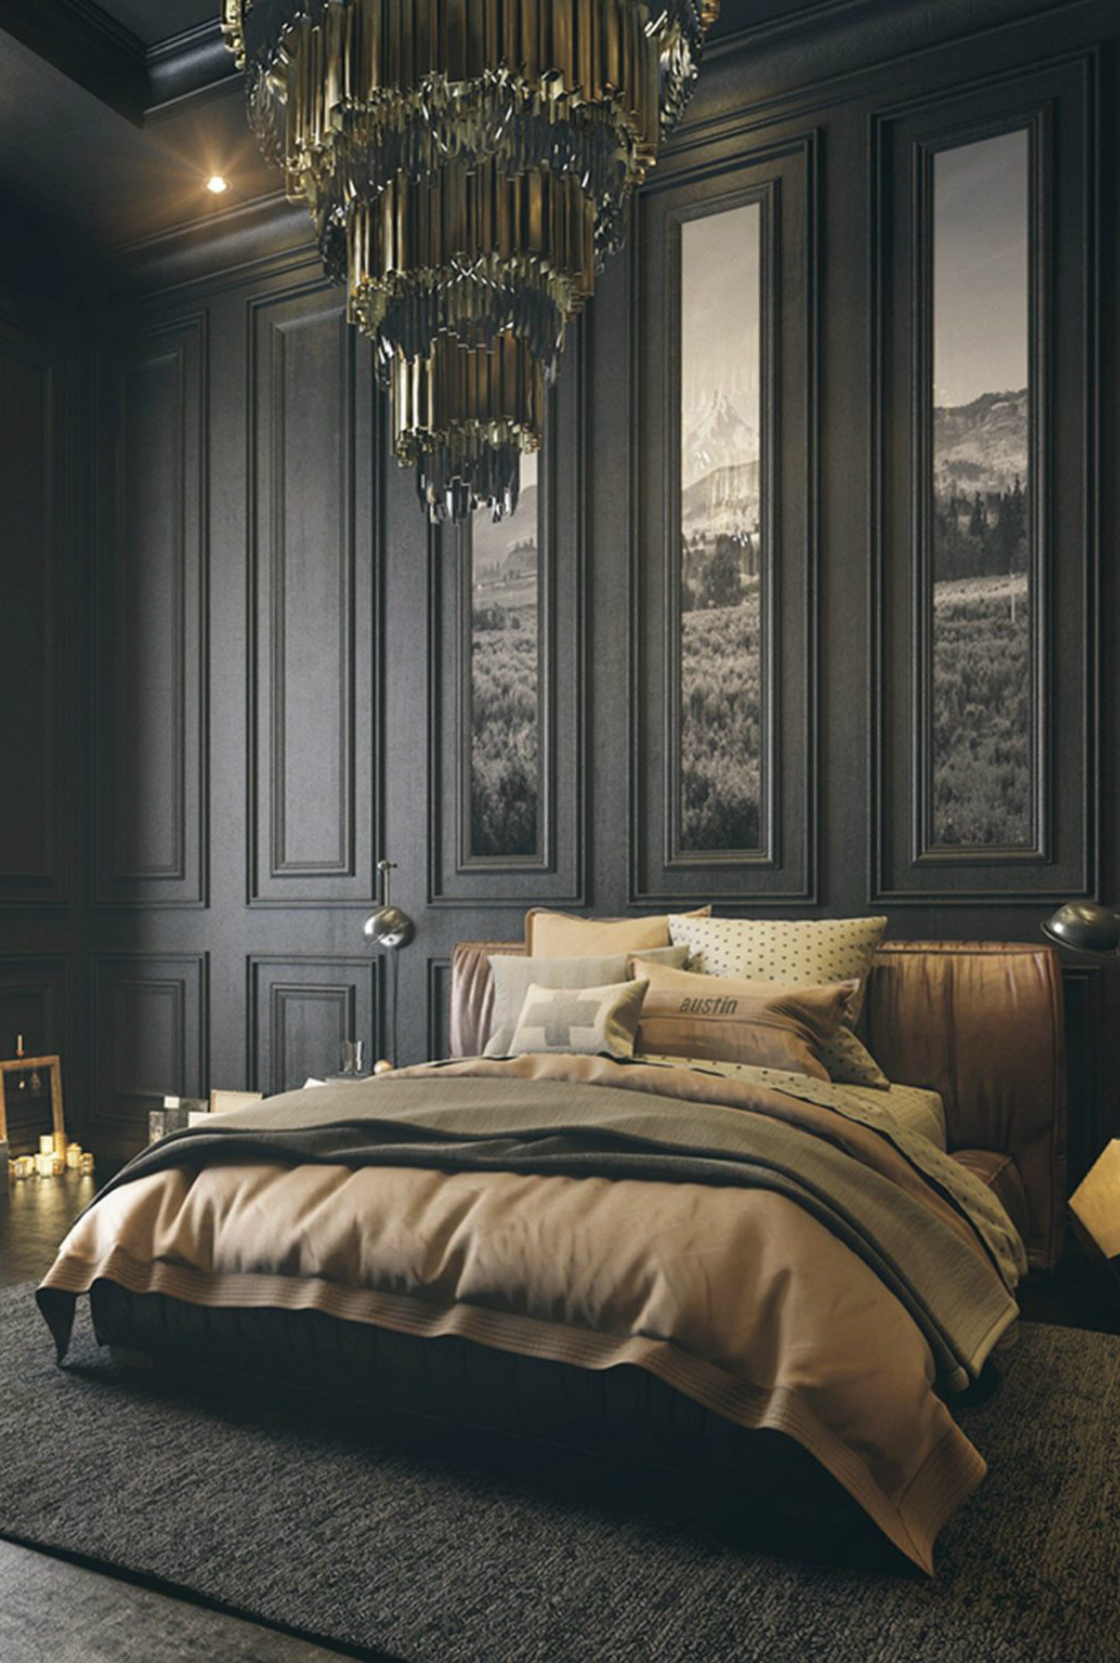 20 Luxurious Bedroom Design Ideas You Will Want To Copy Next Season Inspirations And Ideas